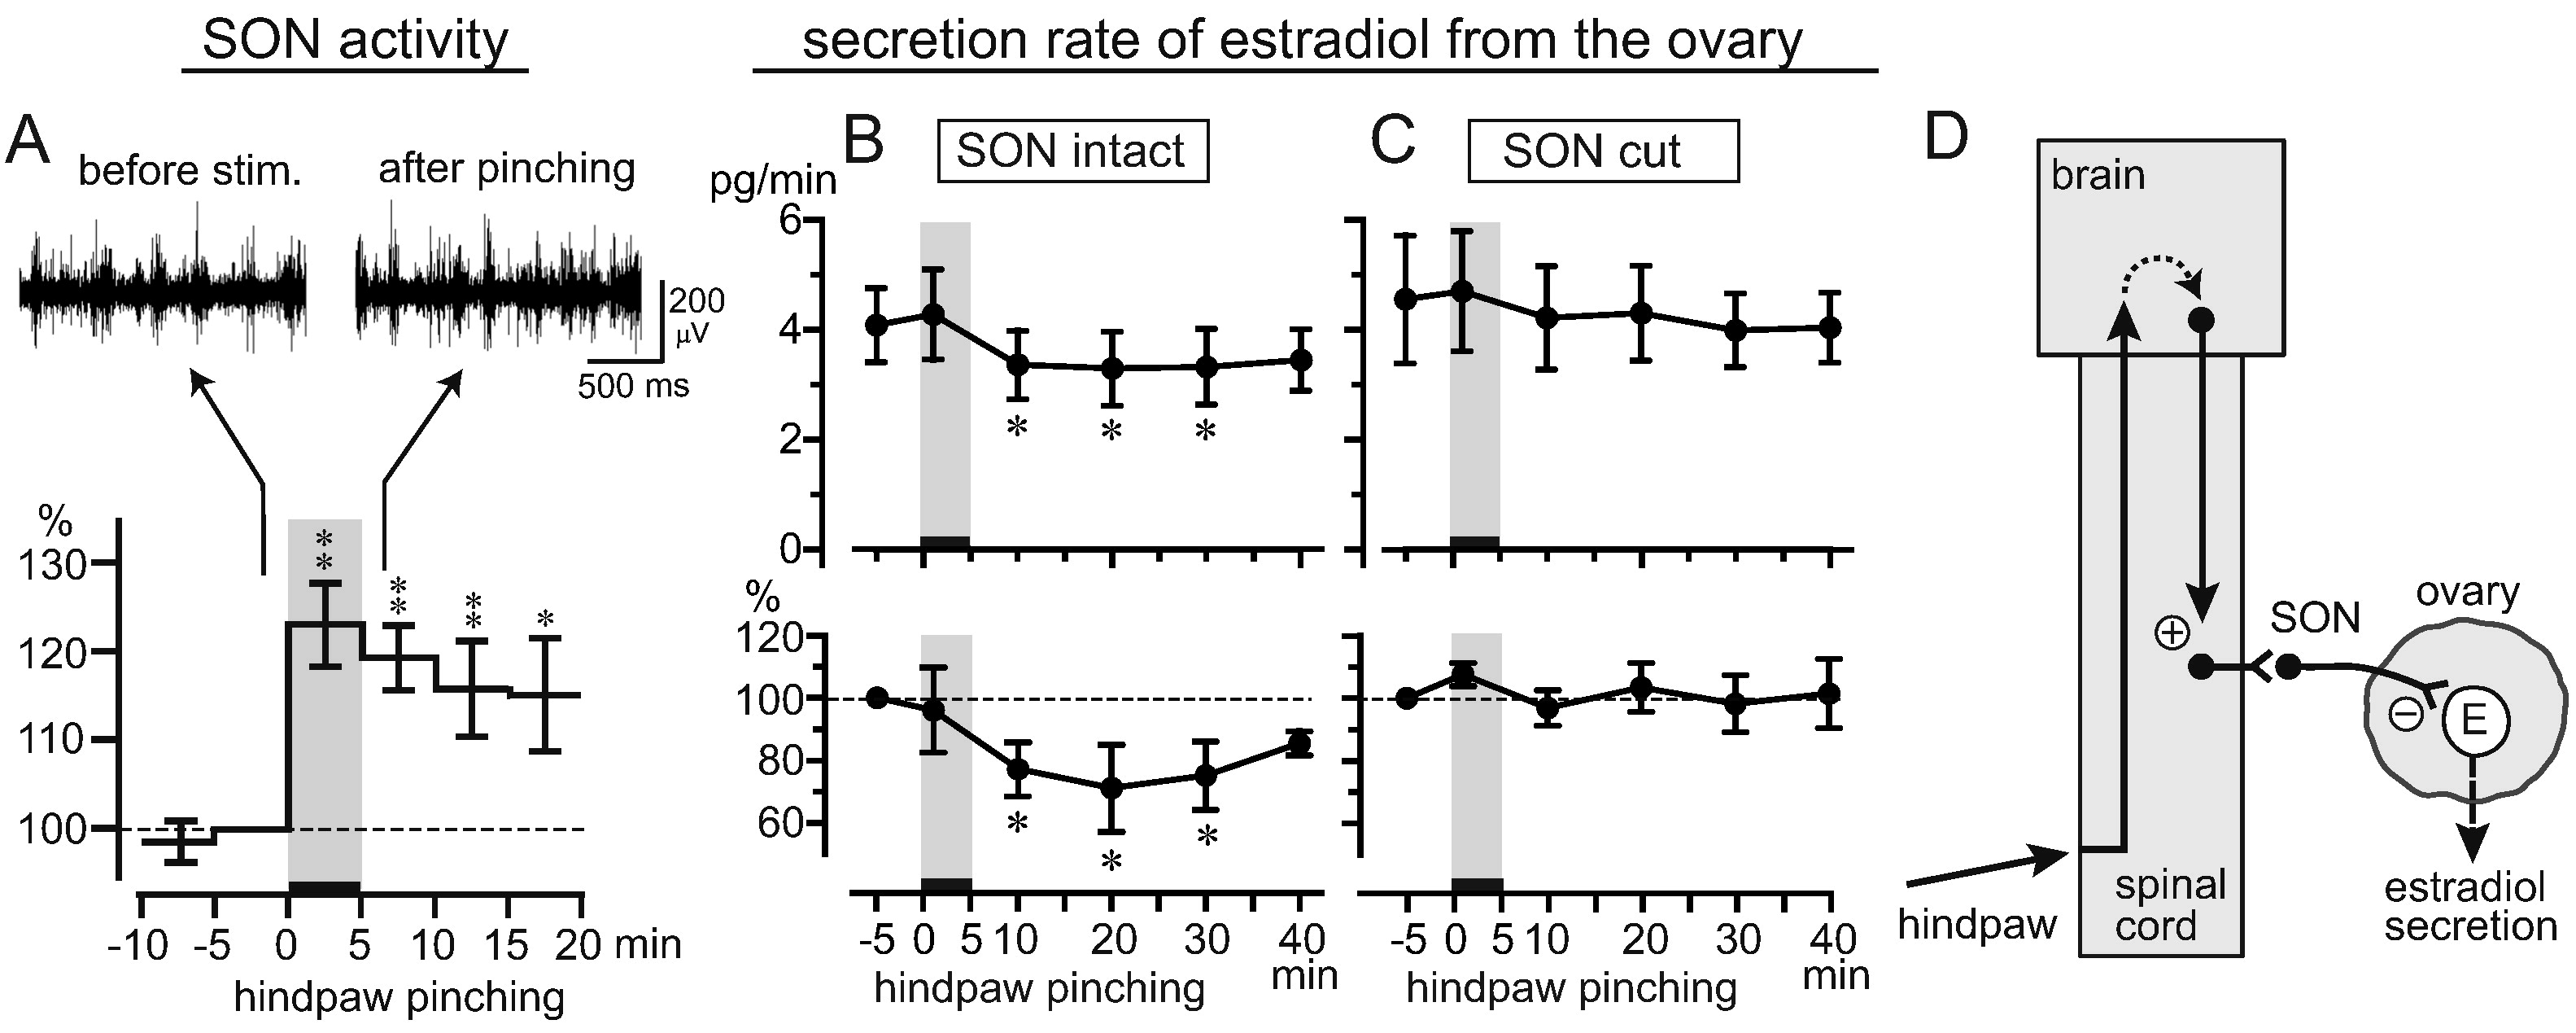 Sympathetic Regulation Of Estradiol Secretion From The